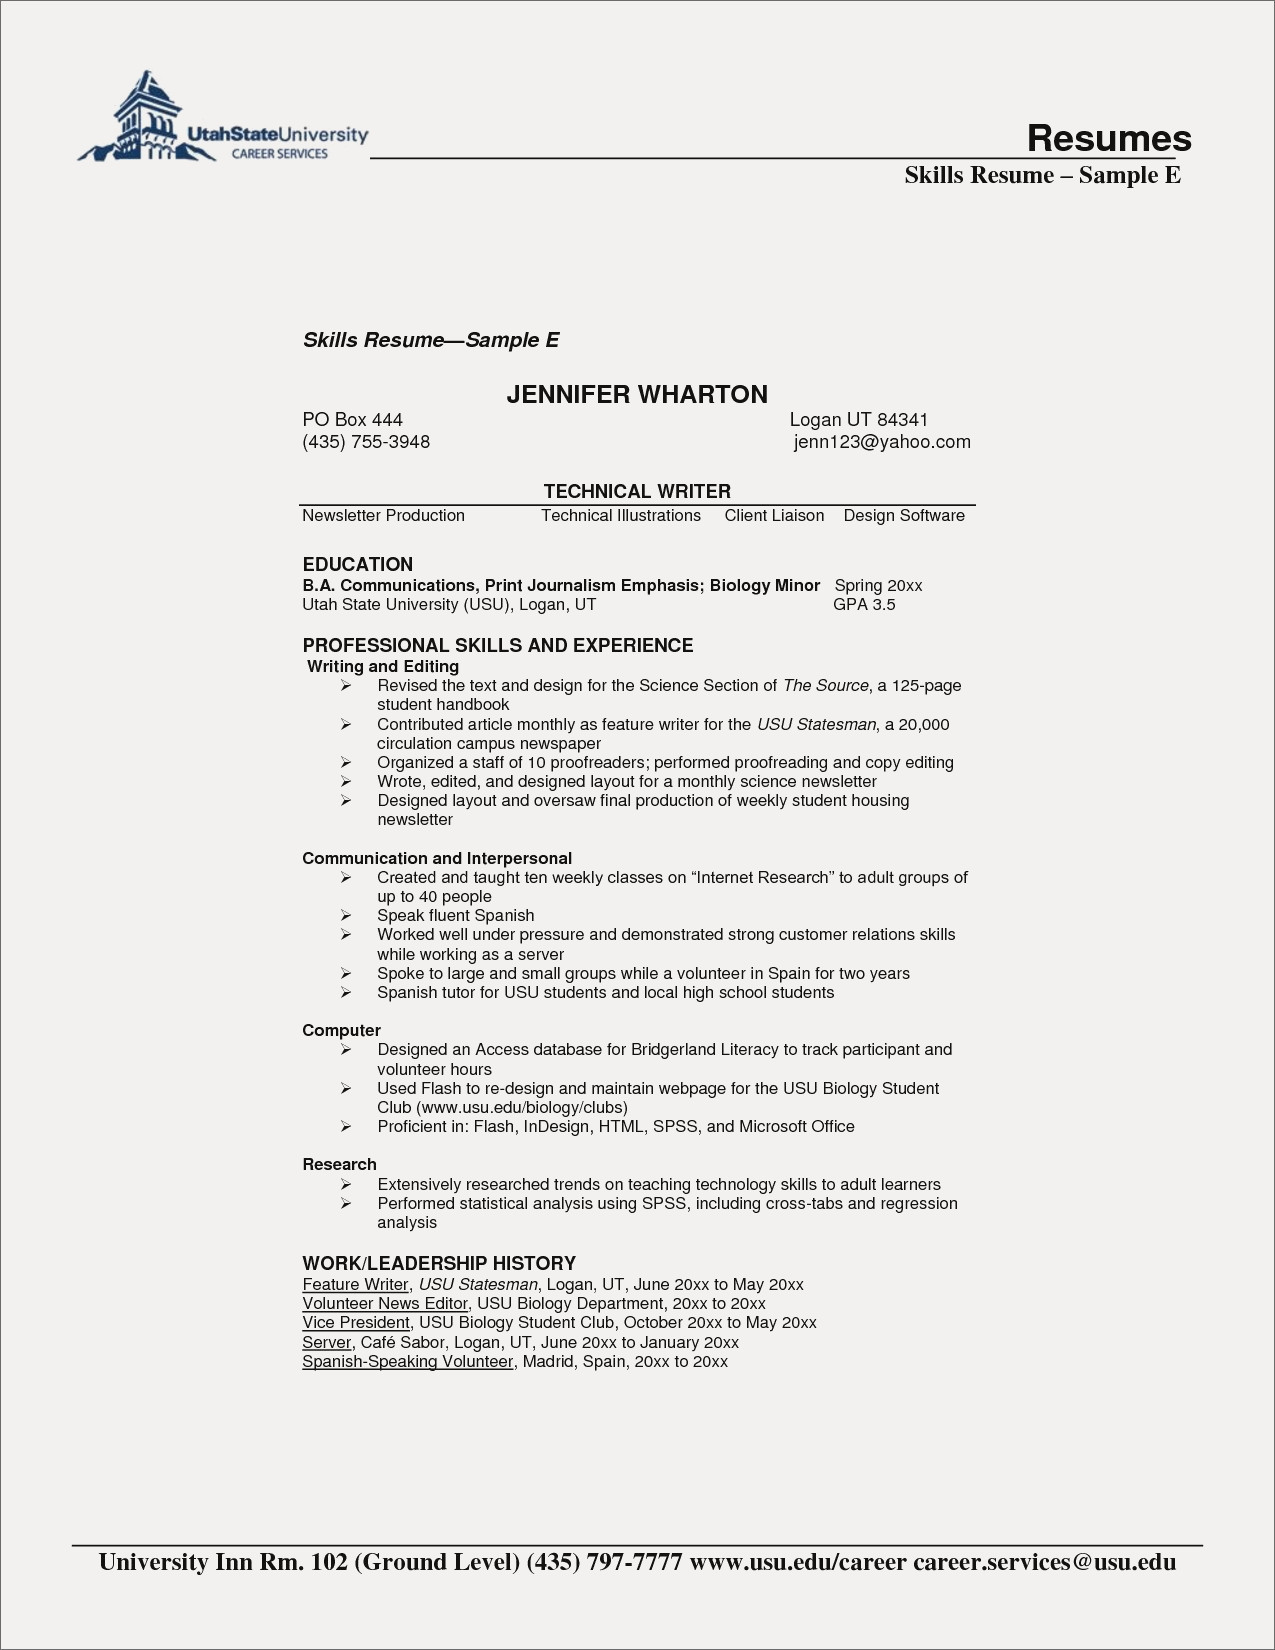 014 Biology Research Paper Lovely Resume Skills Section Example